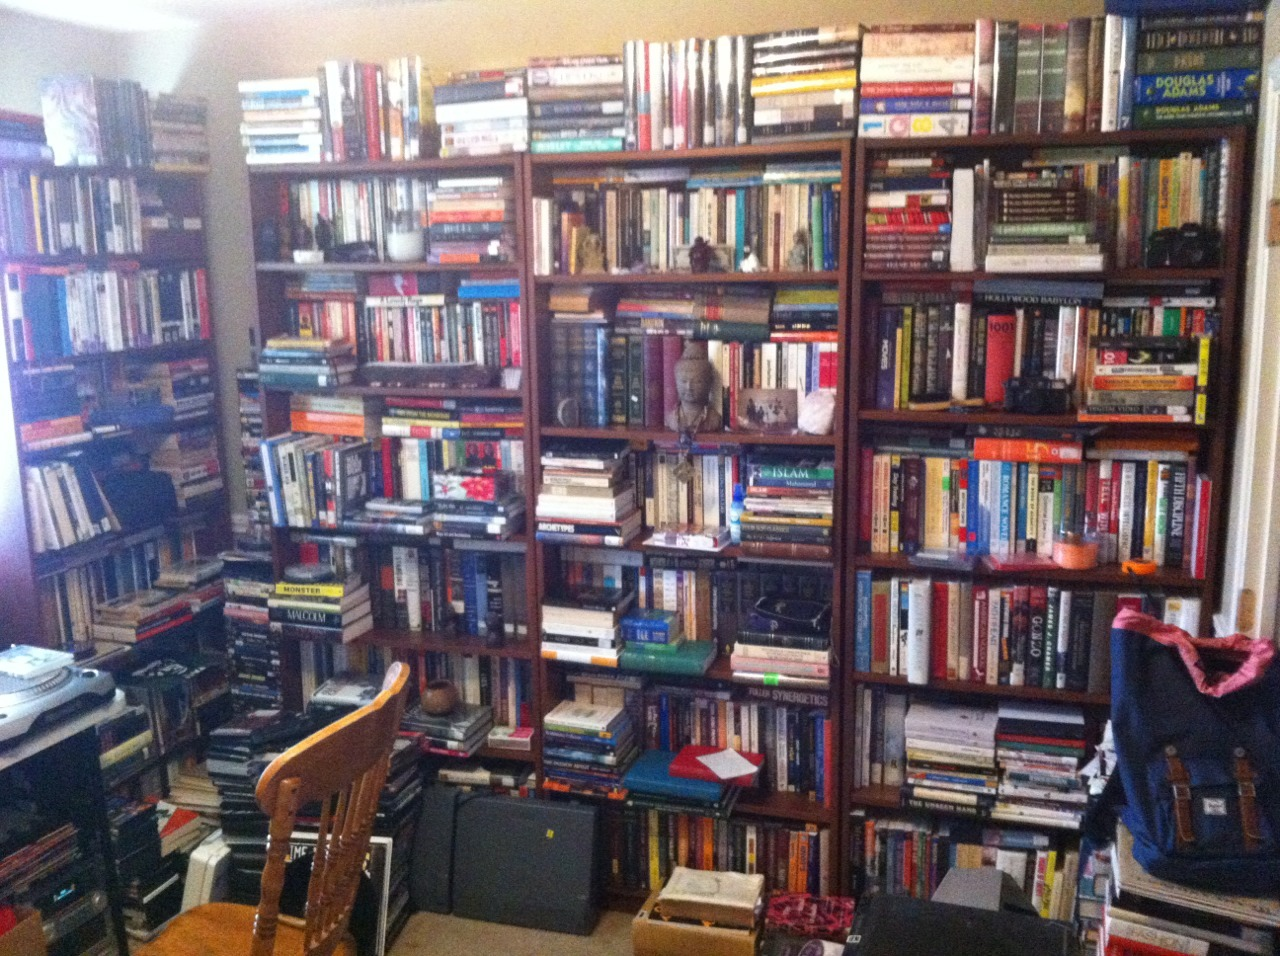 jamaal-terrence: My library is looking kinda thick. I got two more bookcases hiding on the other wall.